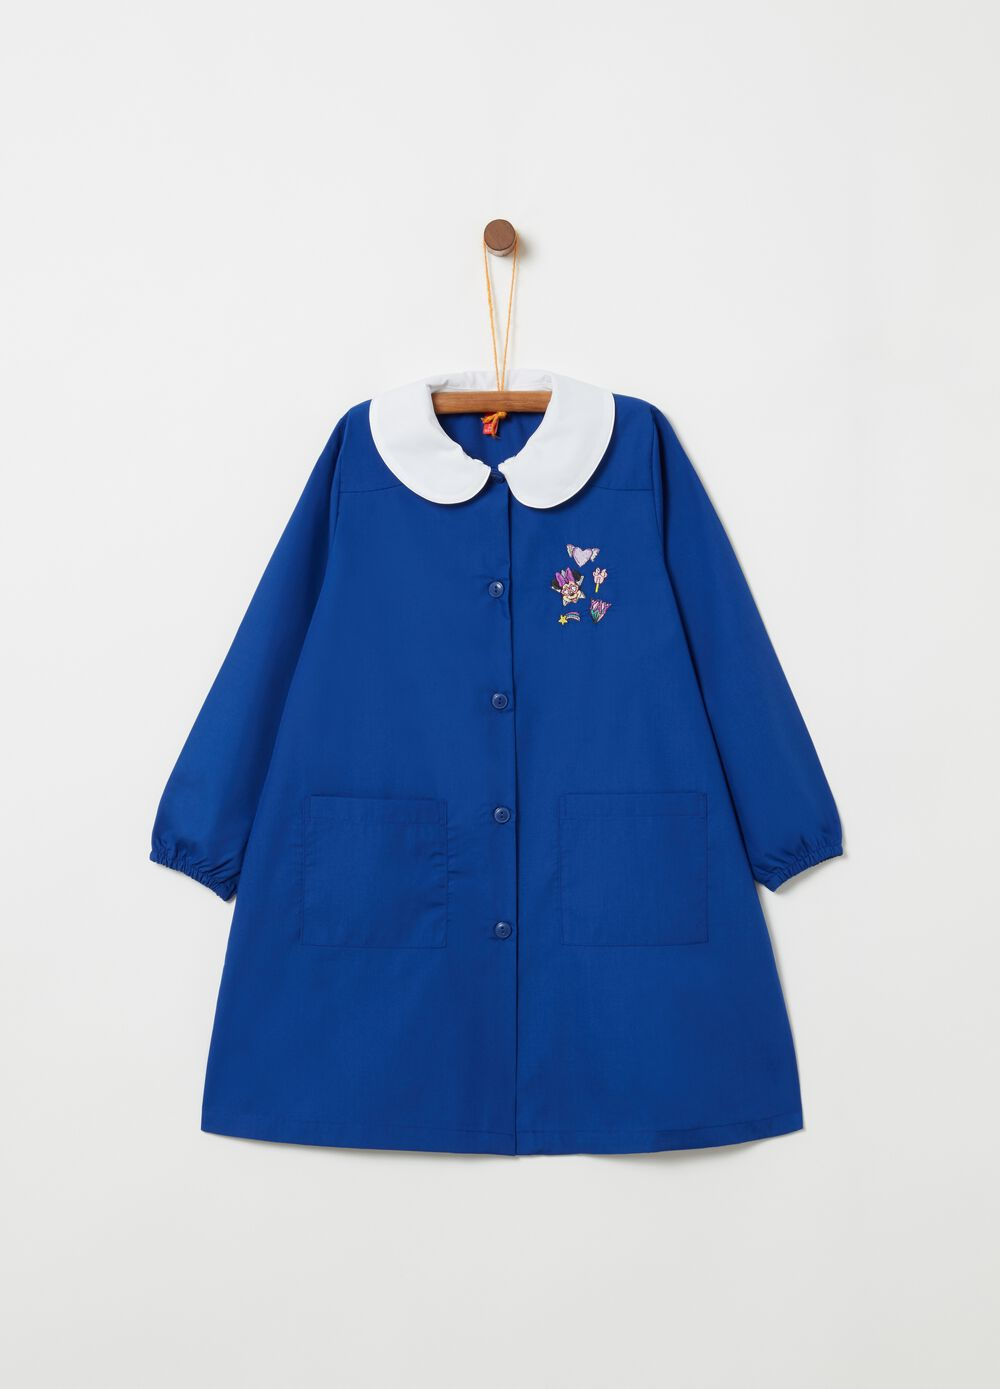 Minnie school smock with rounded collar